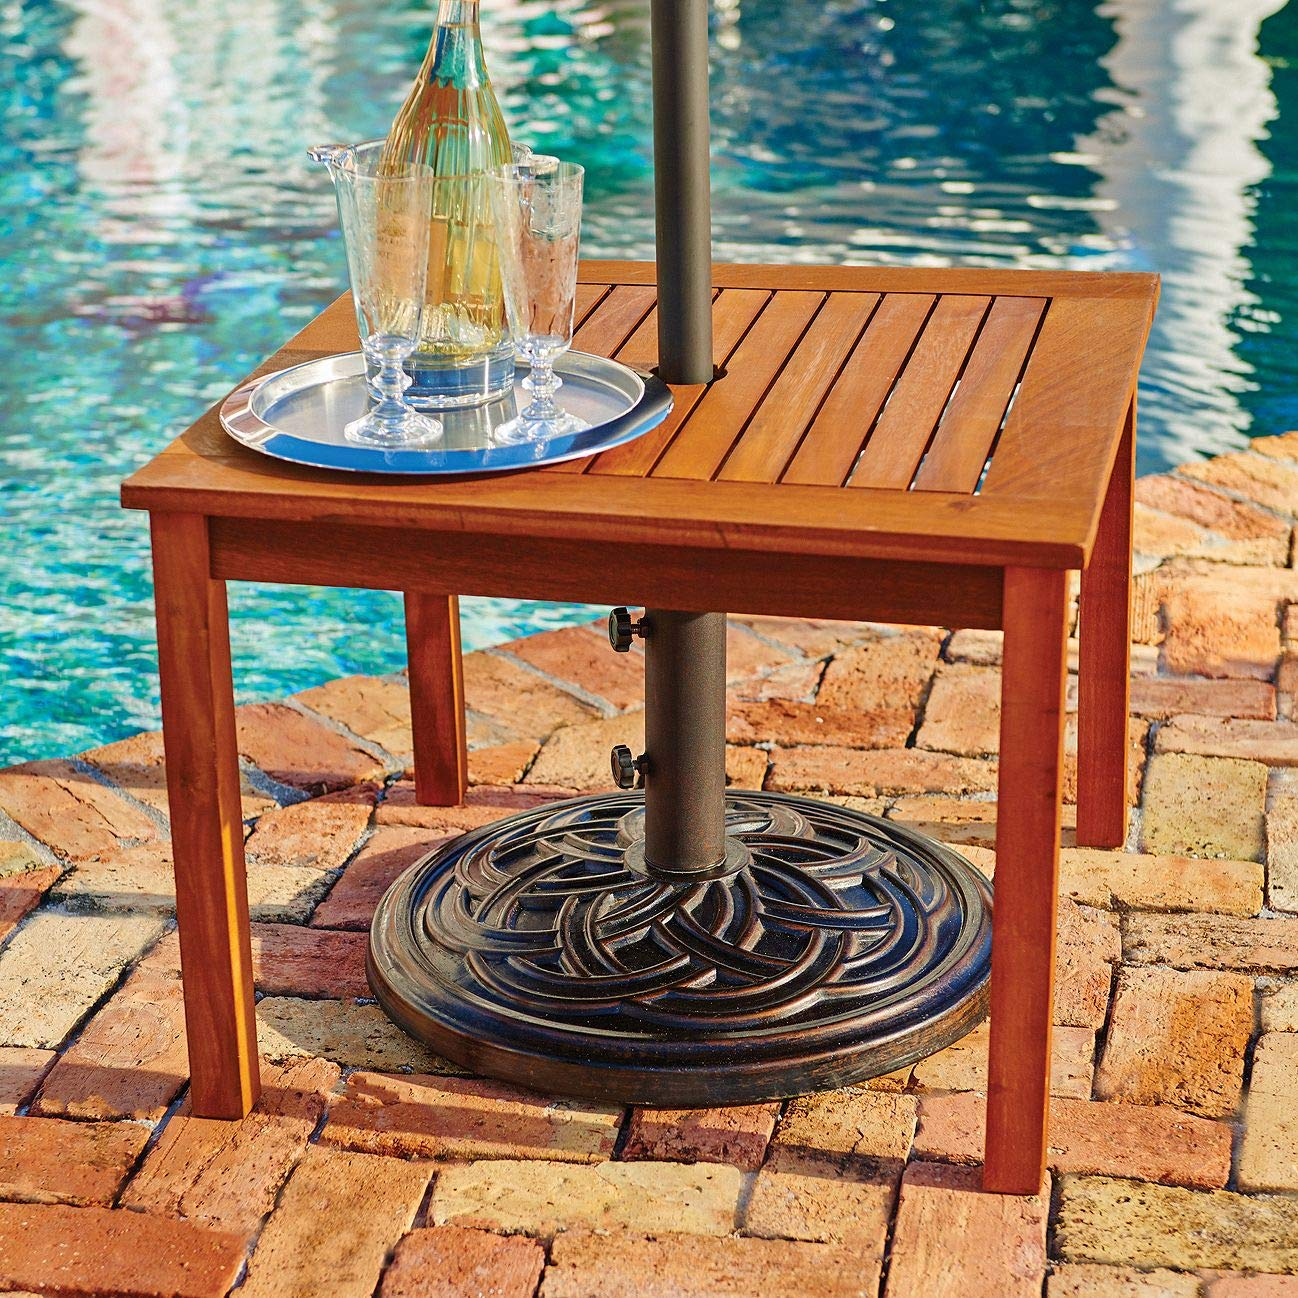 outdoor natural finish eucalyptus wood umbrella side wijhl table end patio pool furniture garden dining accents tulip marble umbrellas rattan tables with glass top kirklands wall